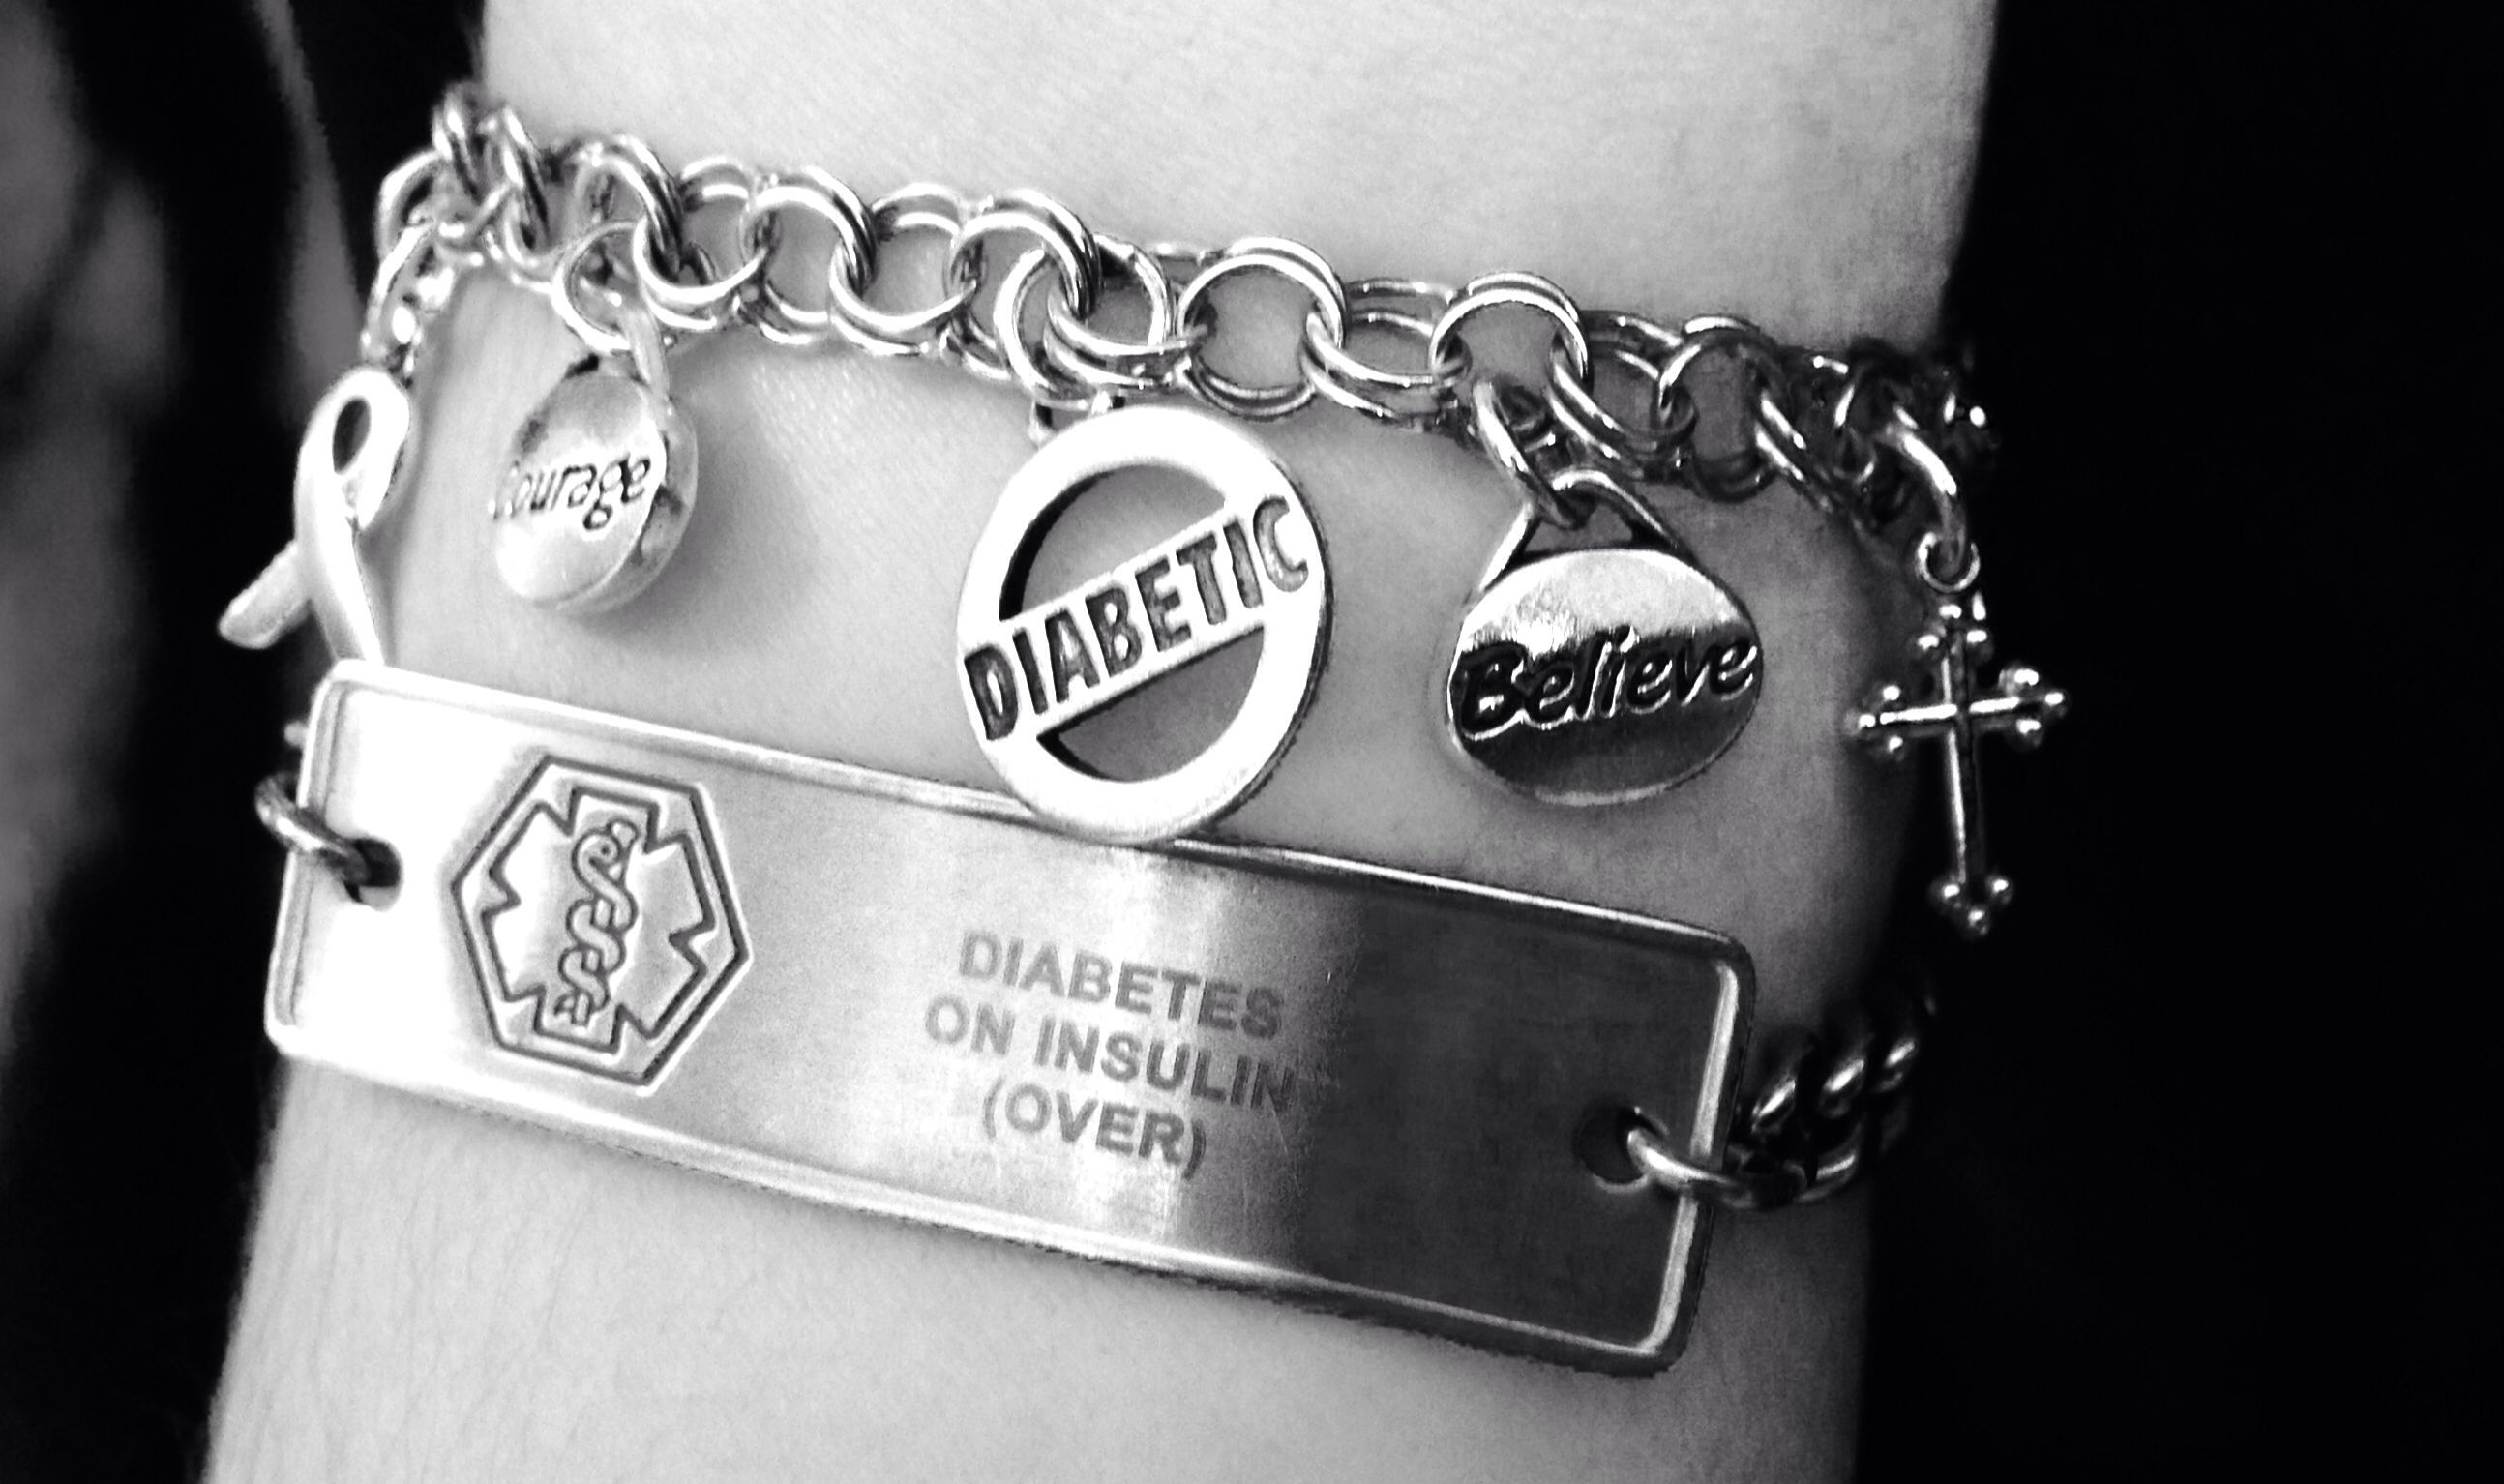 diabetes type alert insulin pre product pump gold engraved bracelet medical plated